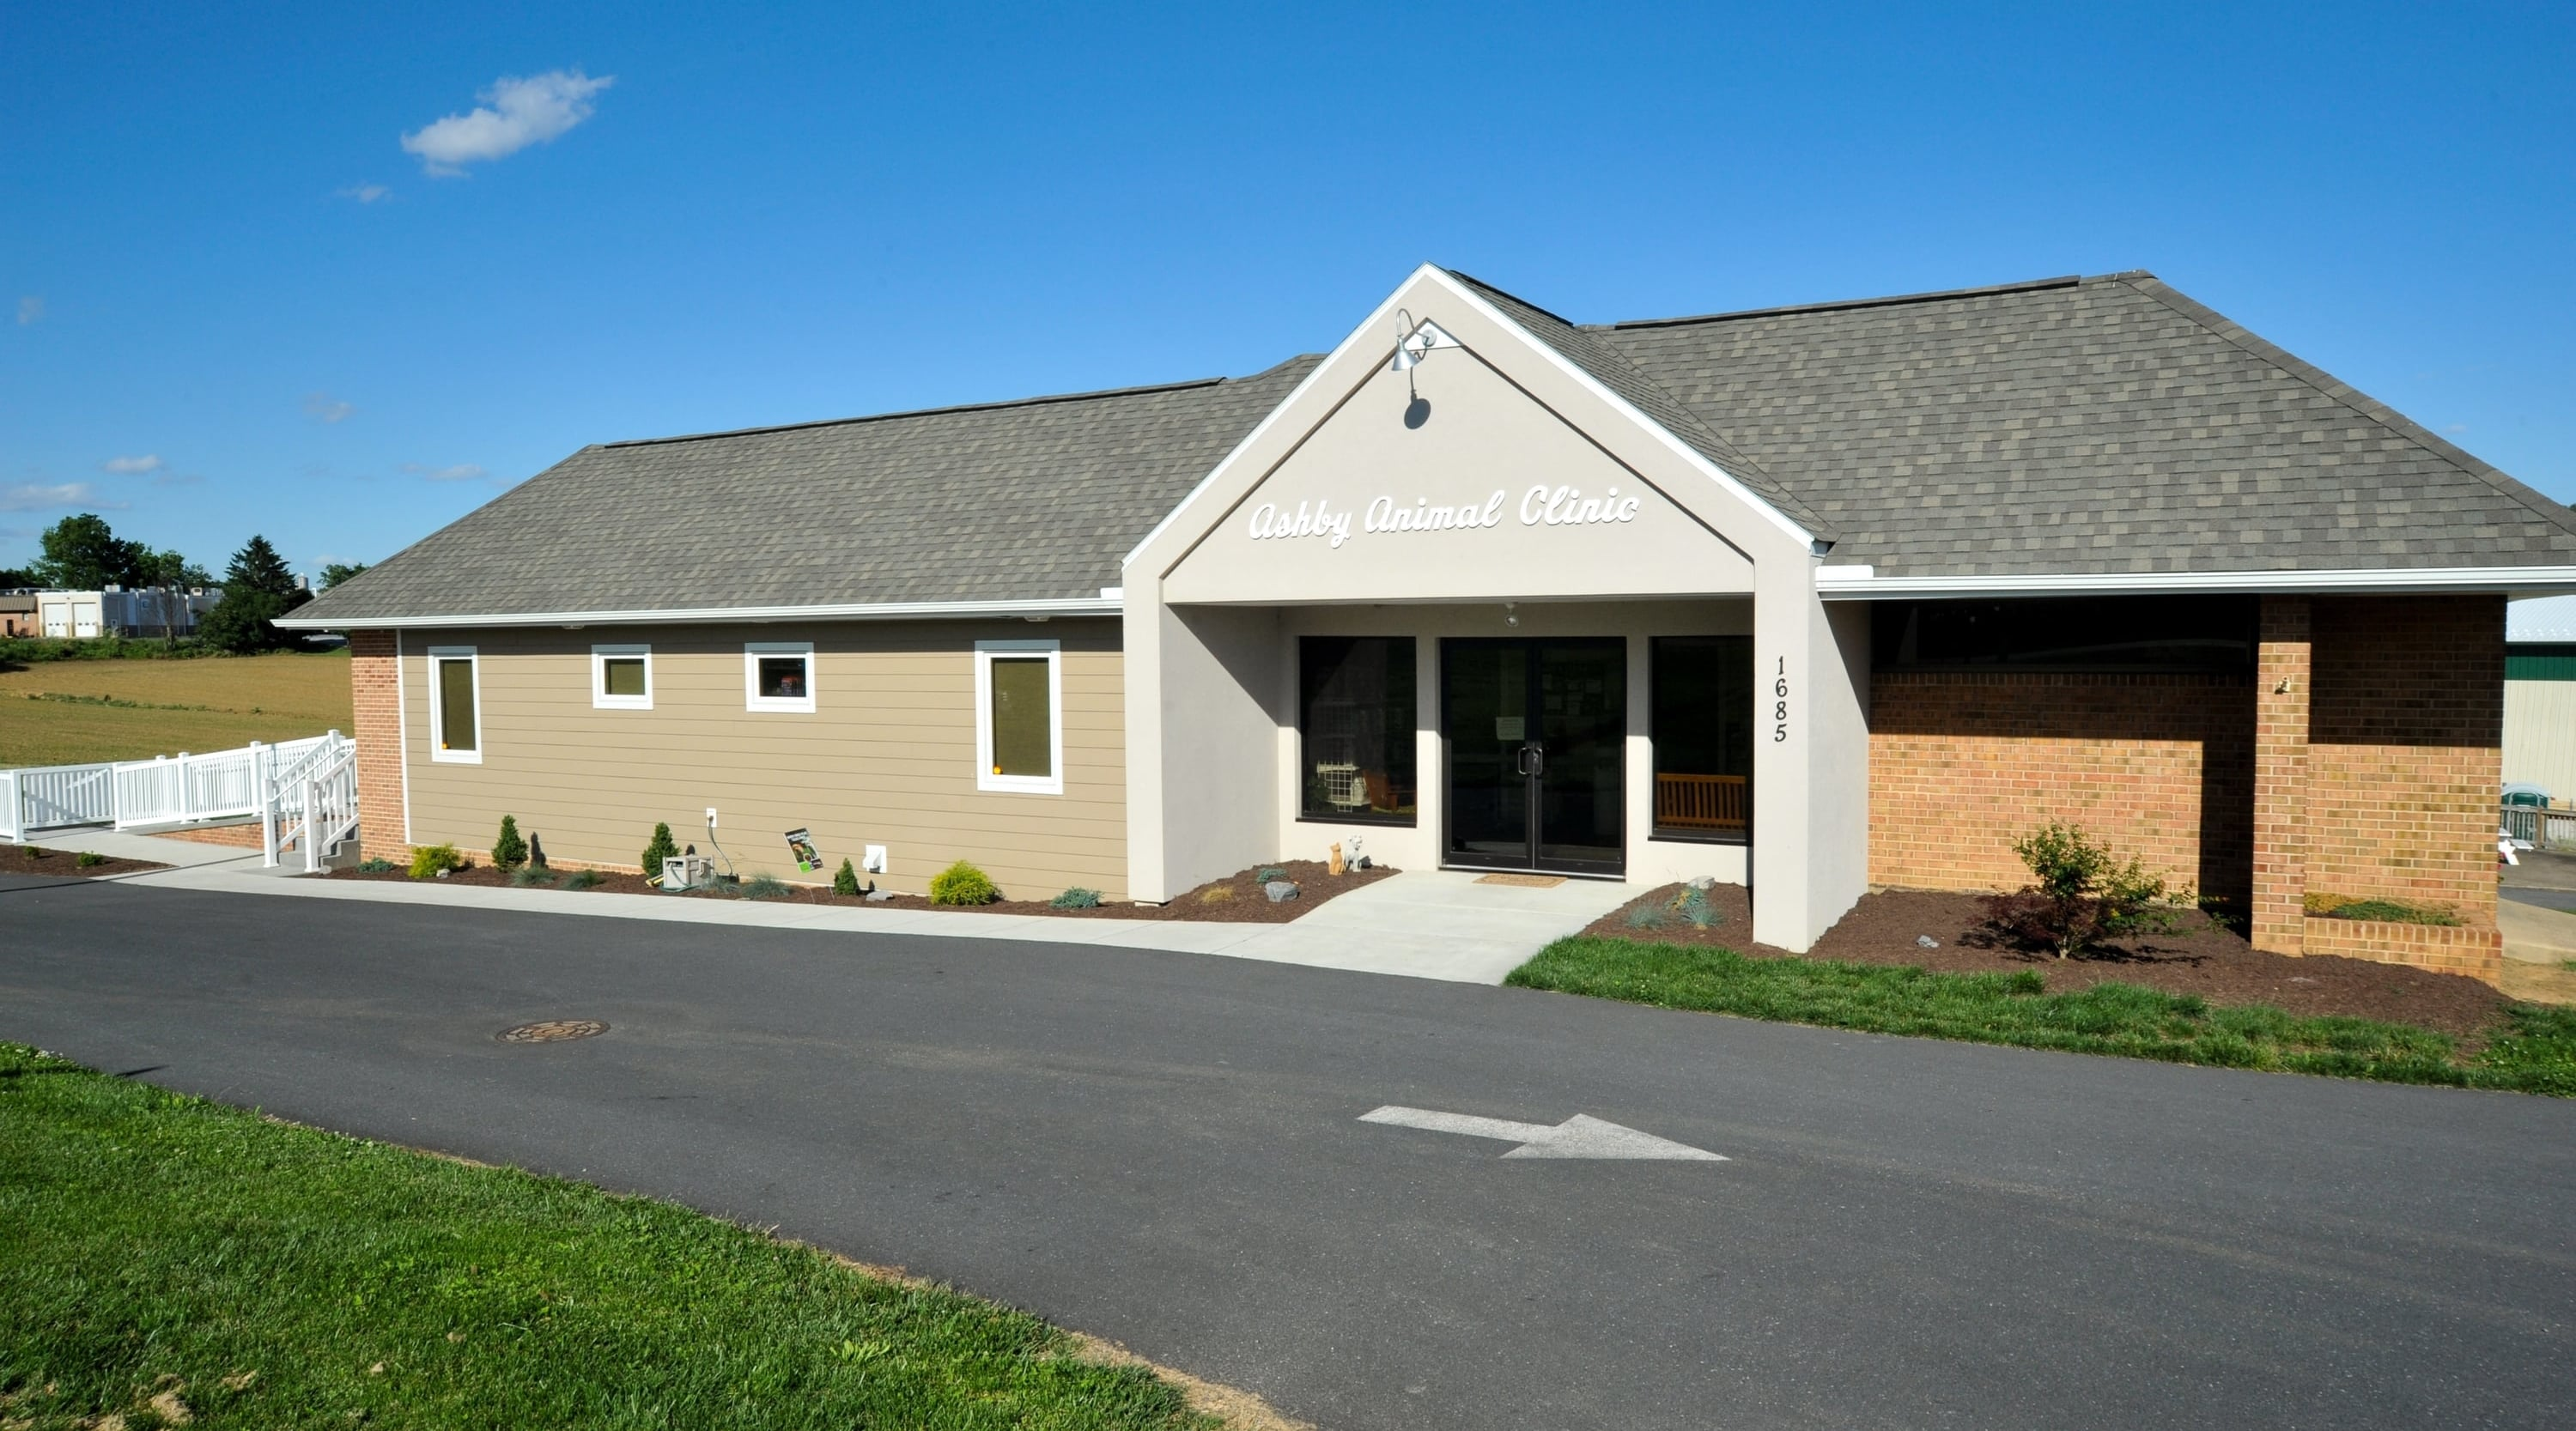 Exterior photo of Ashby Animal Clinic